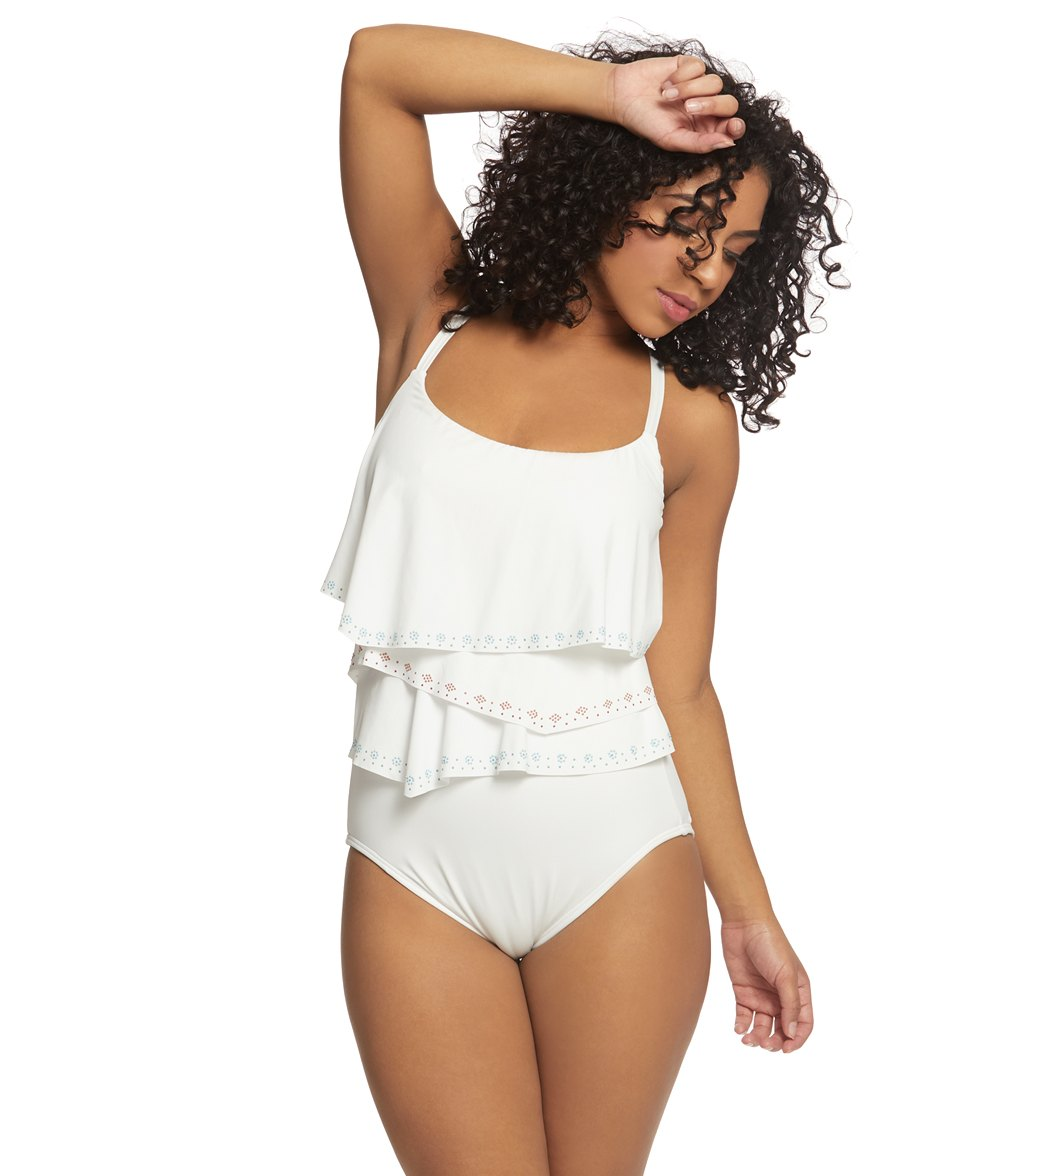 785130c2d5 Coco Reef Hot Spots Aura Ruffle One Piece Swimsuit (C-DD Cup) at  SwimOutlet.com - Free Shipping